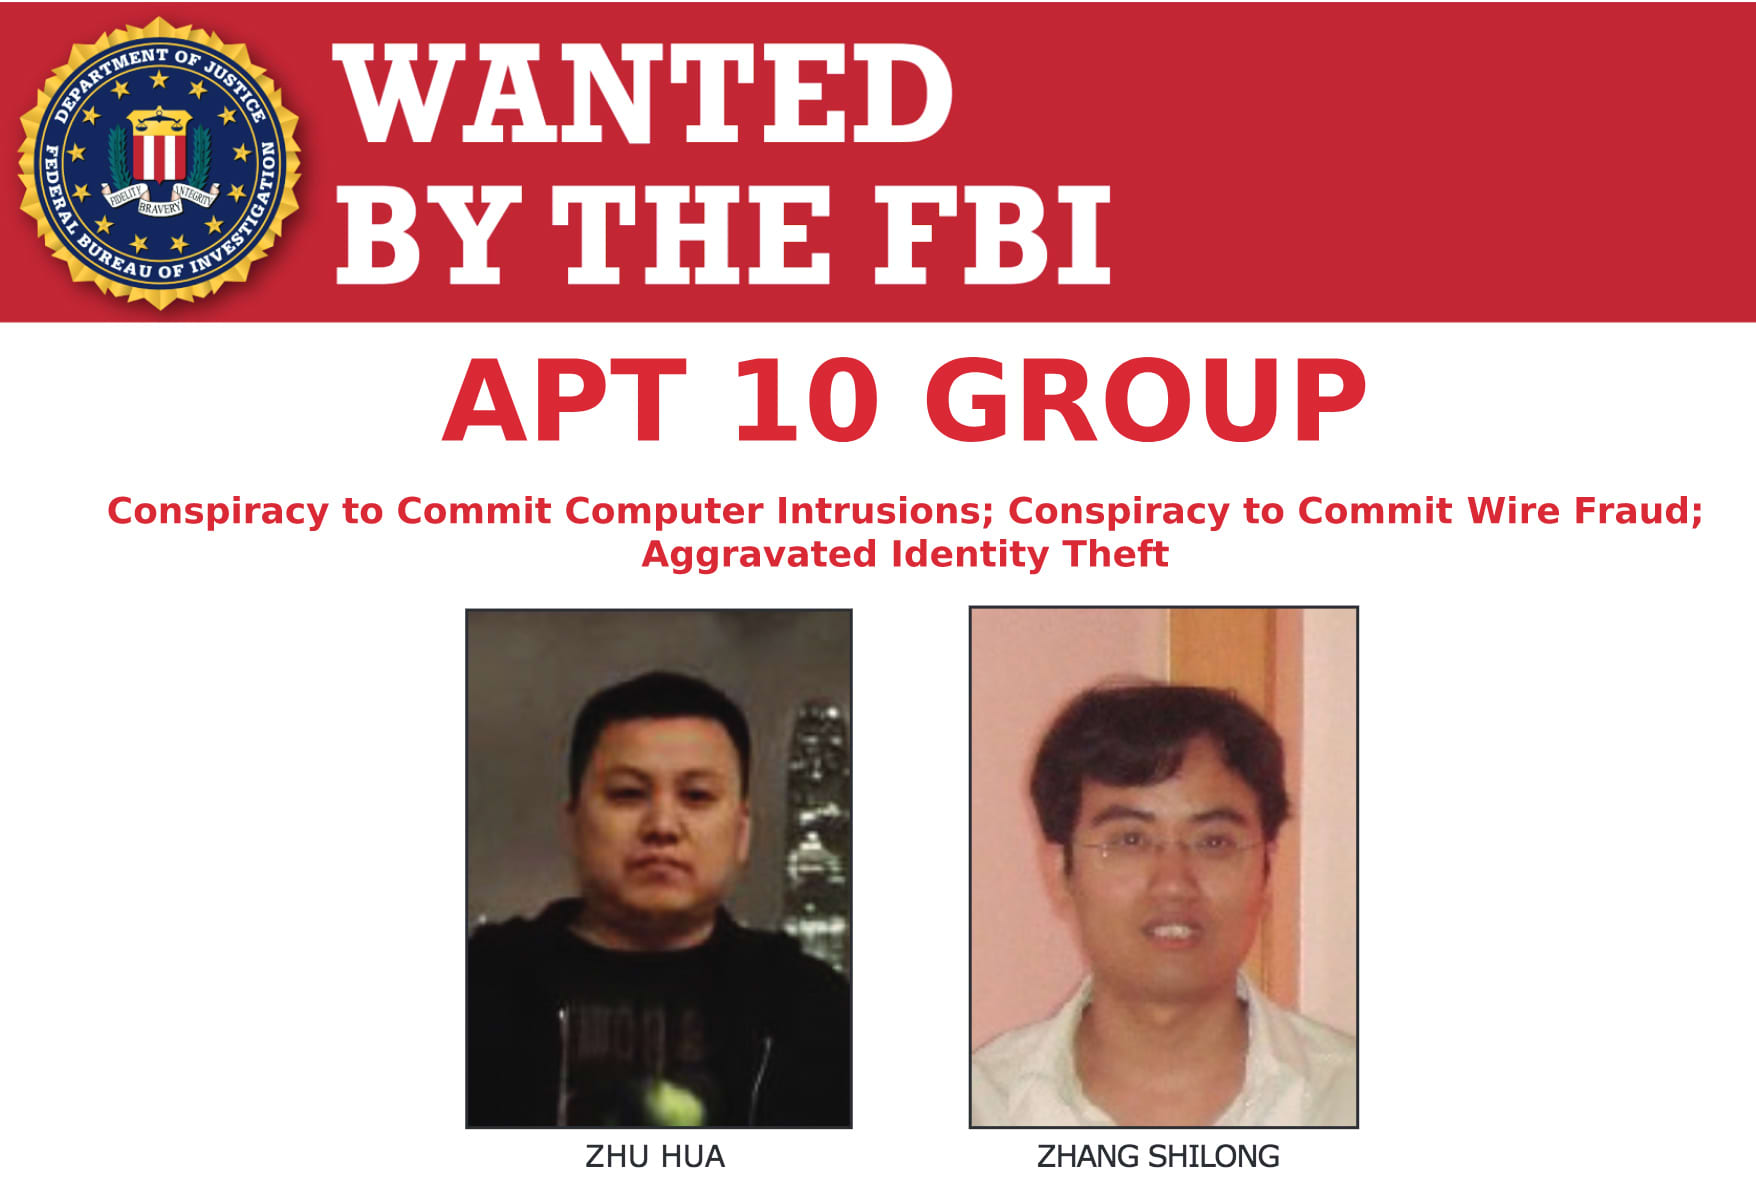 Apt 10 Group FBI Wanted Poster 181220